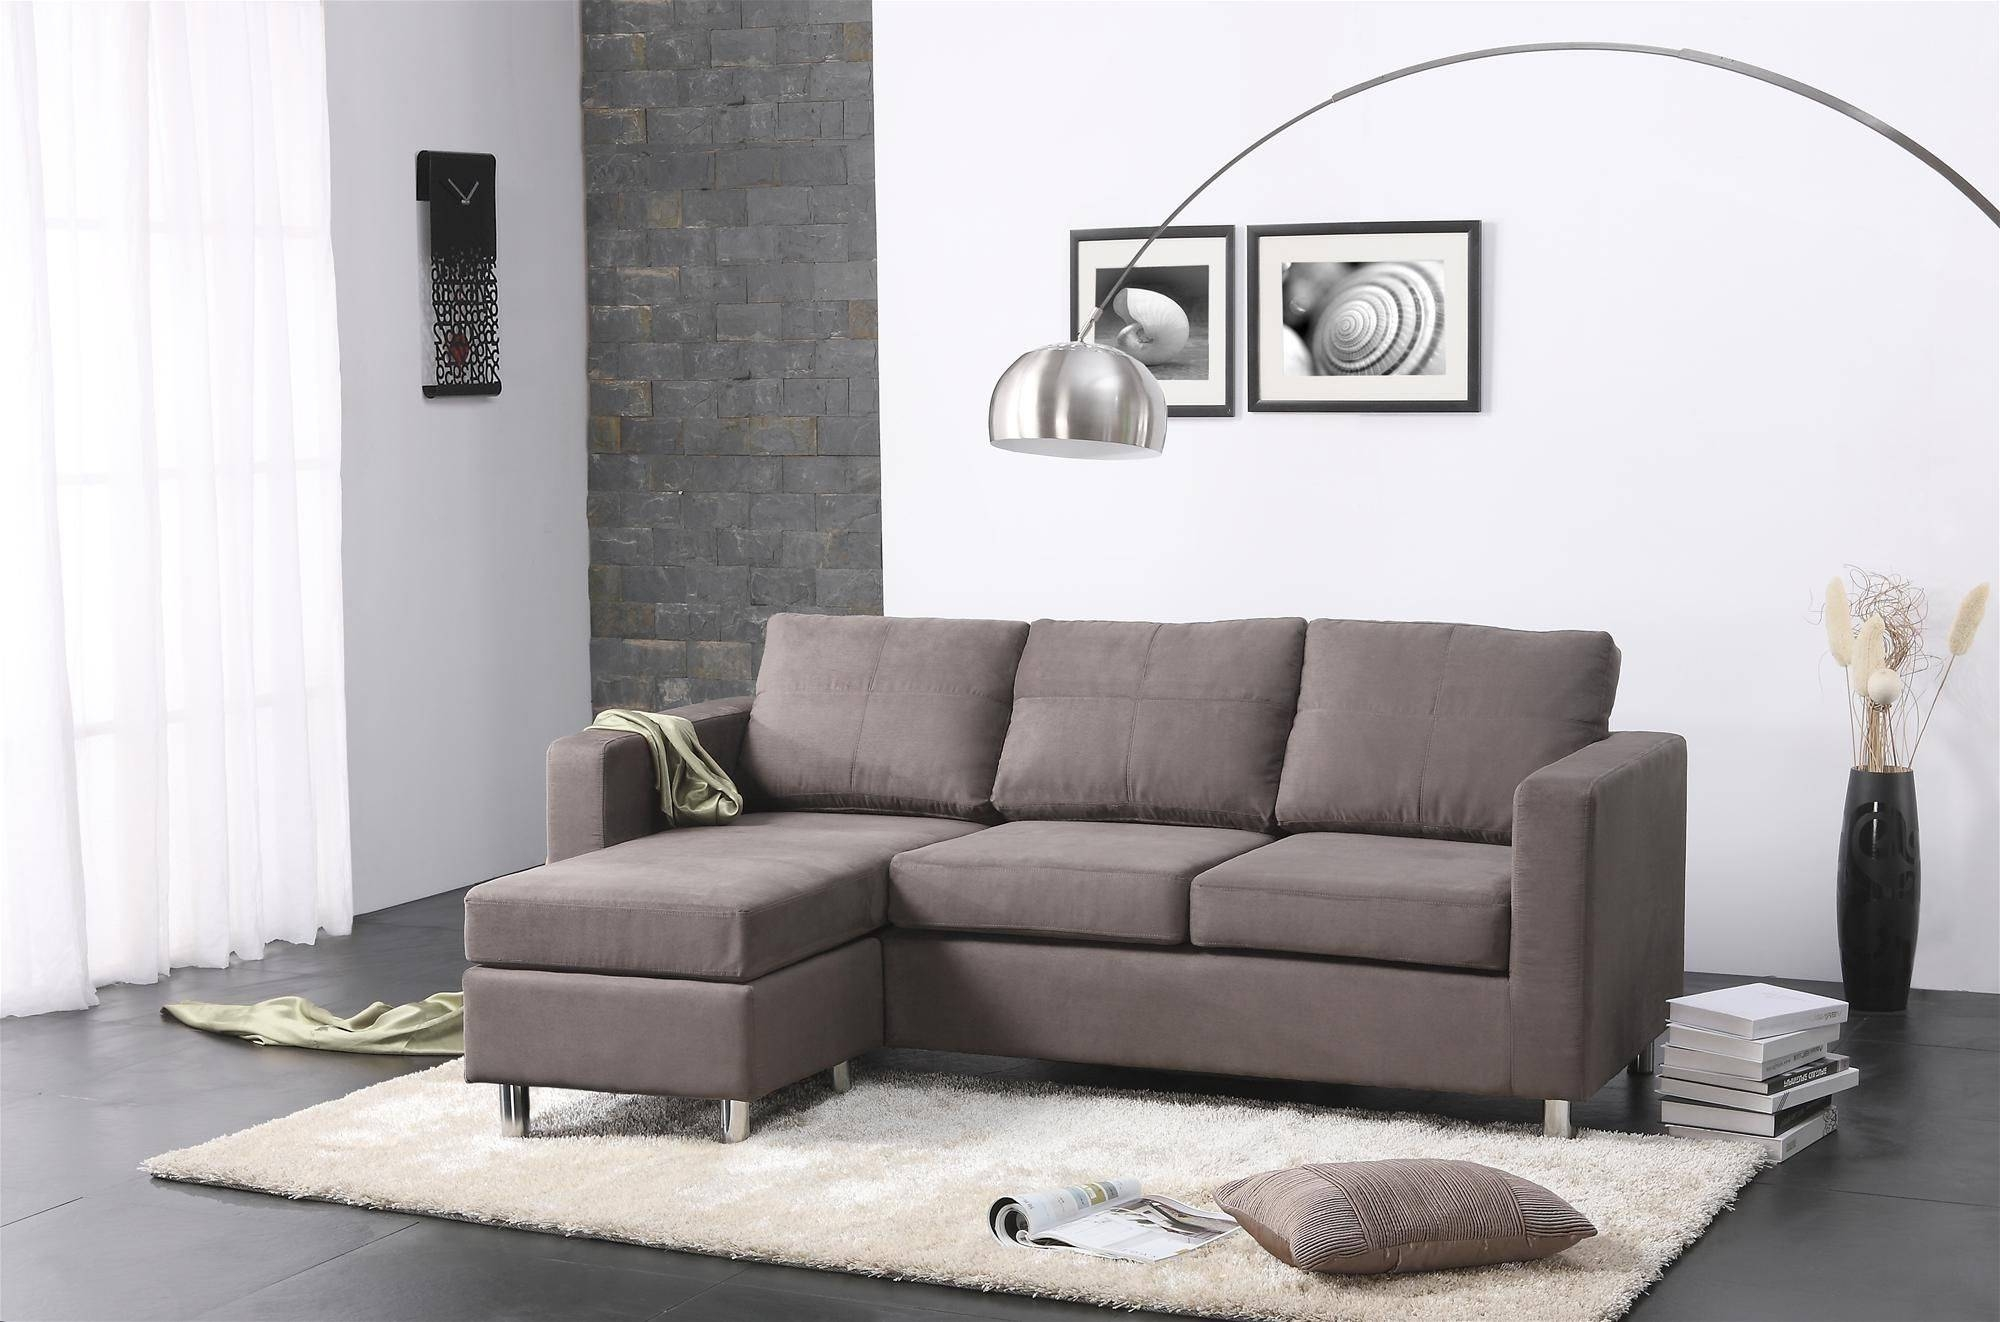 Home house & components rooms living room maximize your space and master your aesthetic with our living room designs, furniture and accessories. Top 25 of Modern Sectional Sofas for Small Spaces